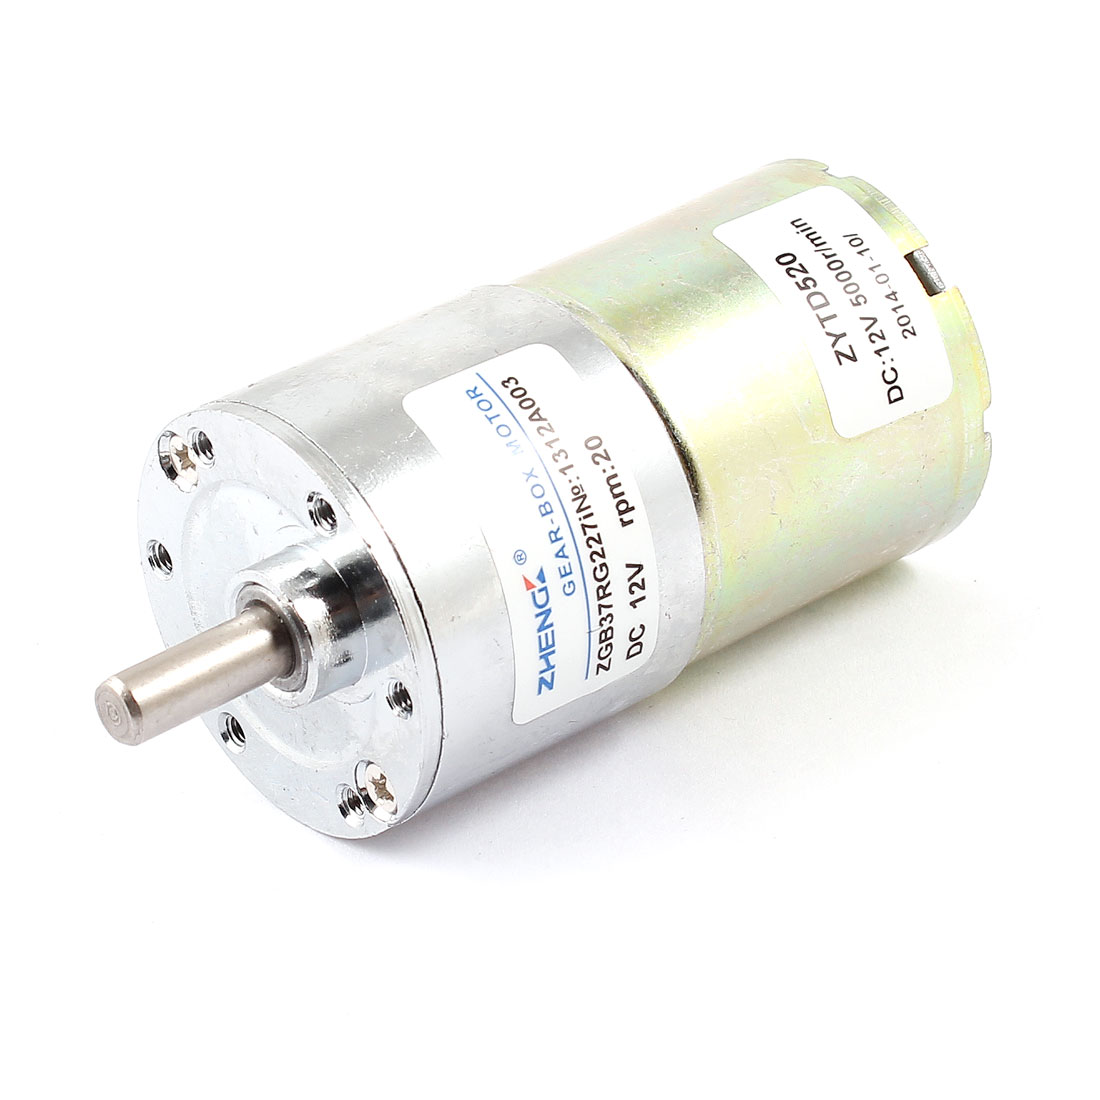 Shaft Diameter 6mm x 15mm DC 12V 20 RPM Speed 6mm Dia Shaft Magnetic Gearbox Electric Geared Motor 37mm x 86mm цена